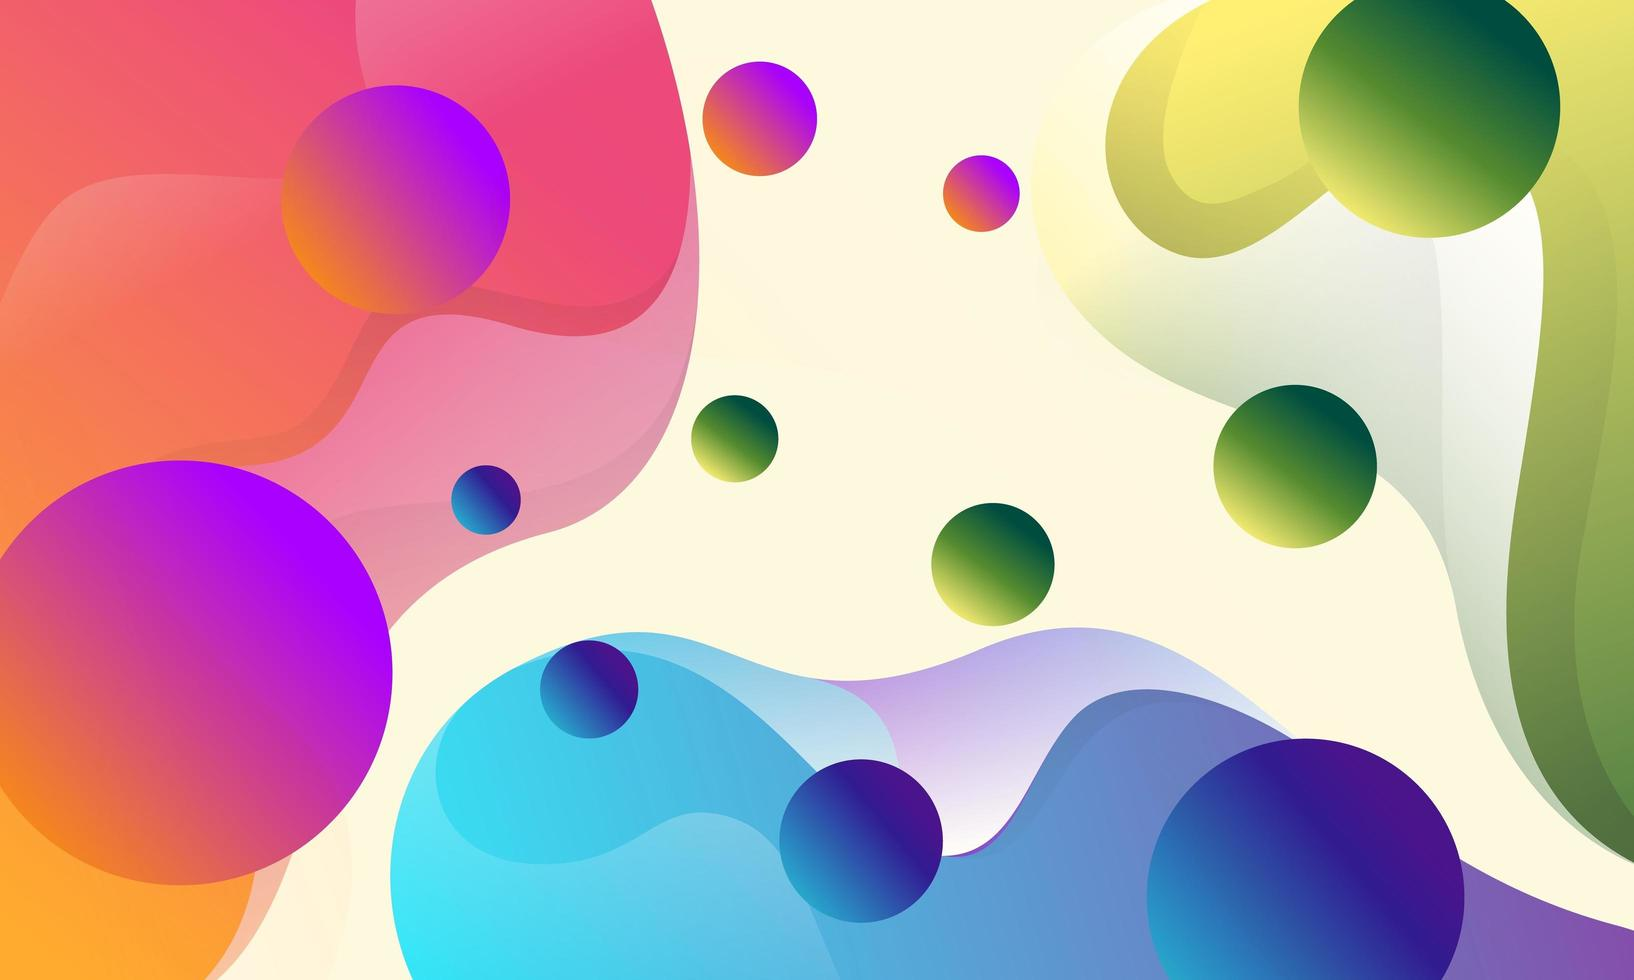 Abstract colorful flow shapes background vector